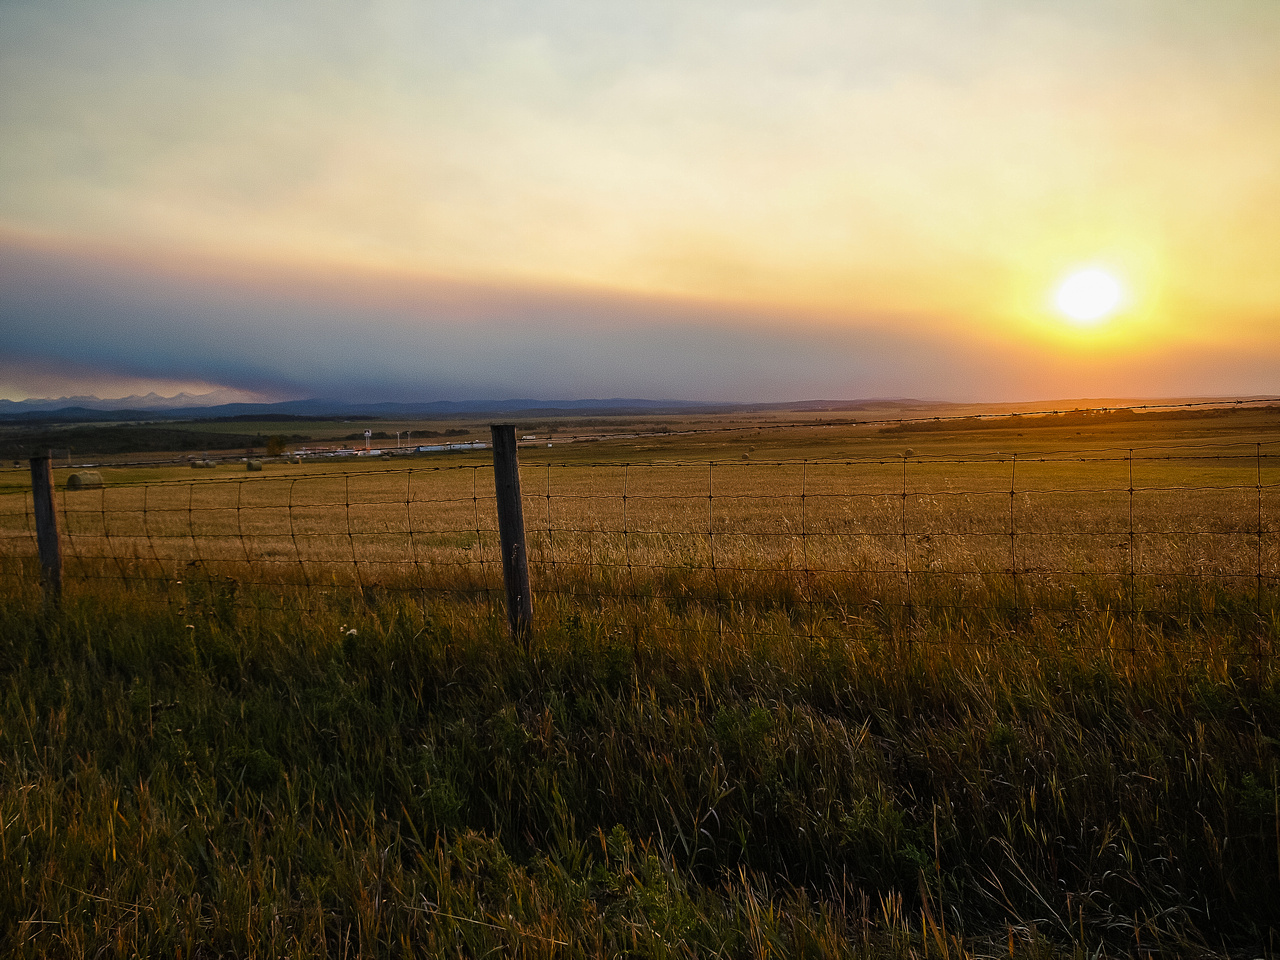 Back near Calgary the smoke and haze thickens considerably.